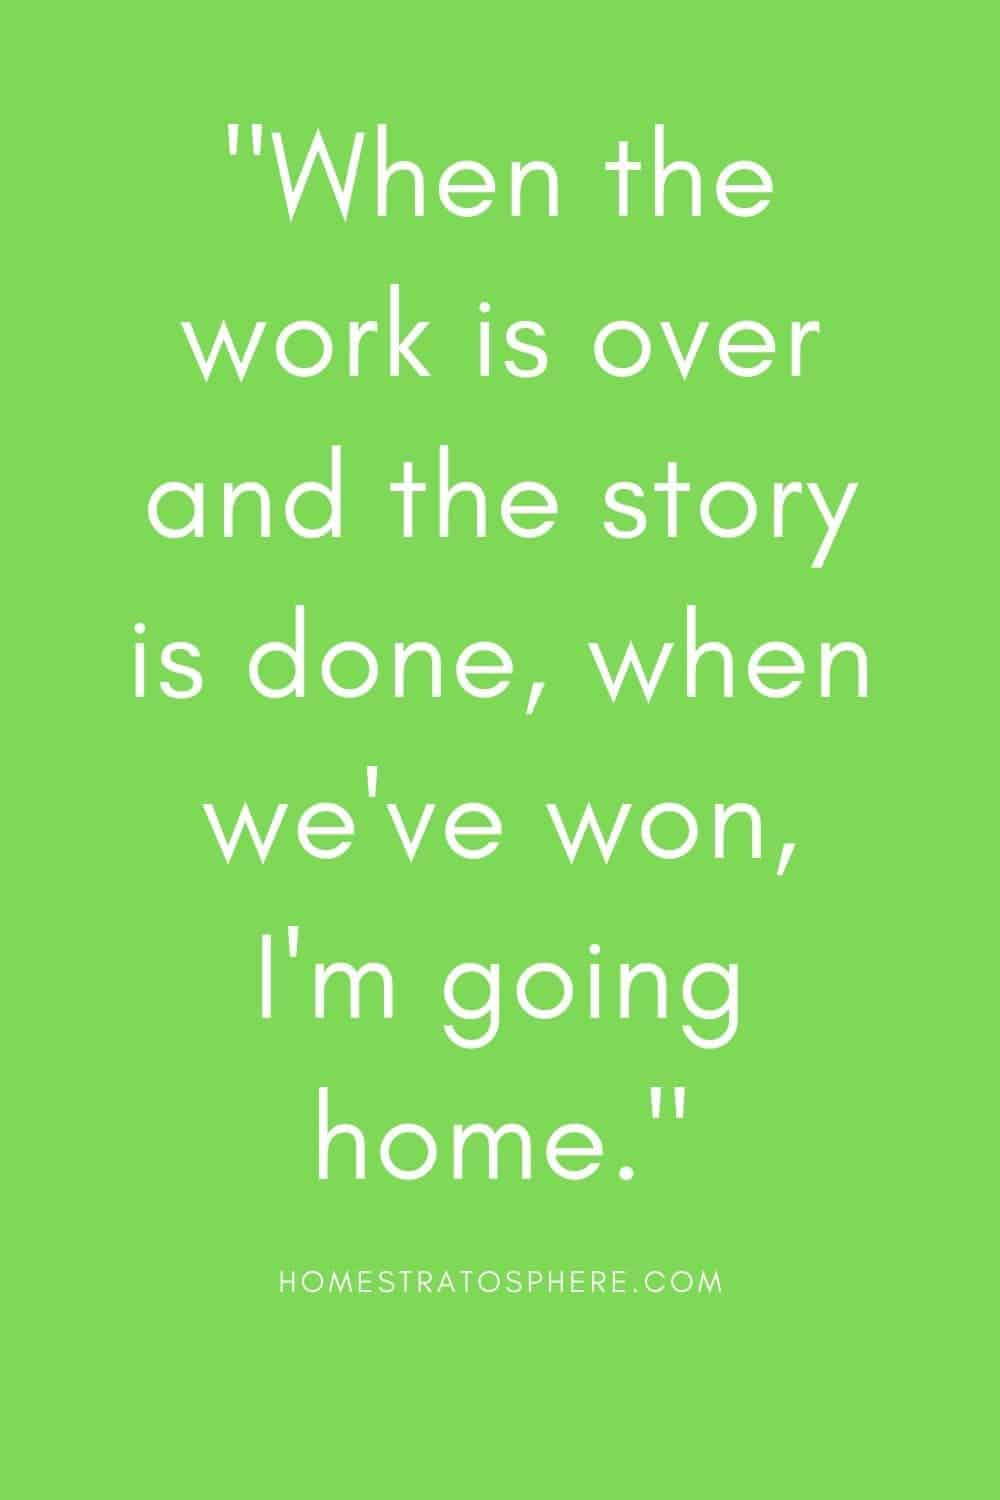 """""""When the work is over and the story is done, when we've won, I'm going home."""""""